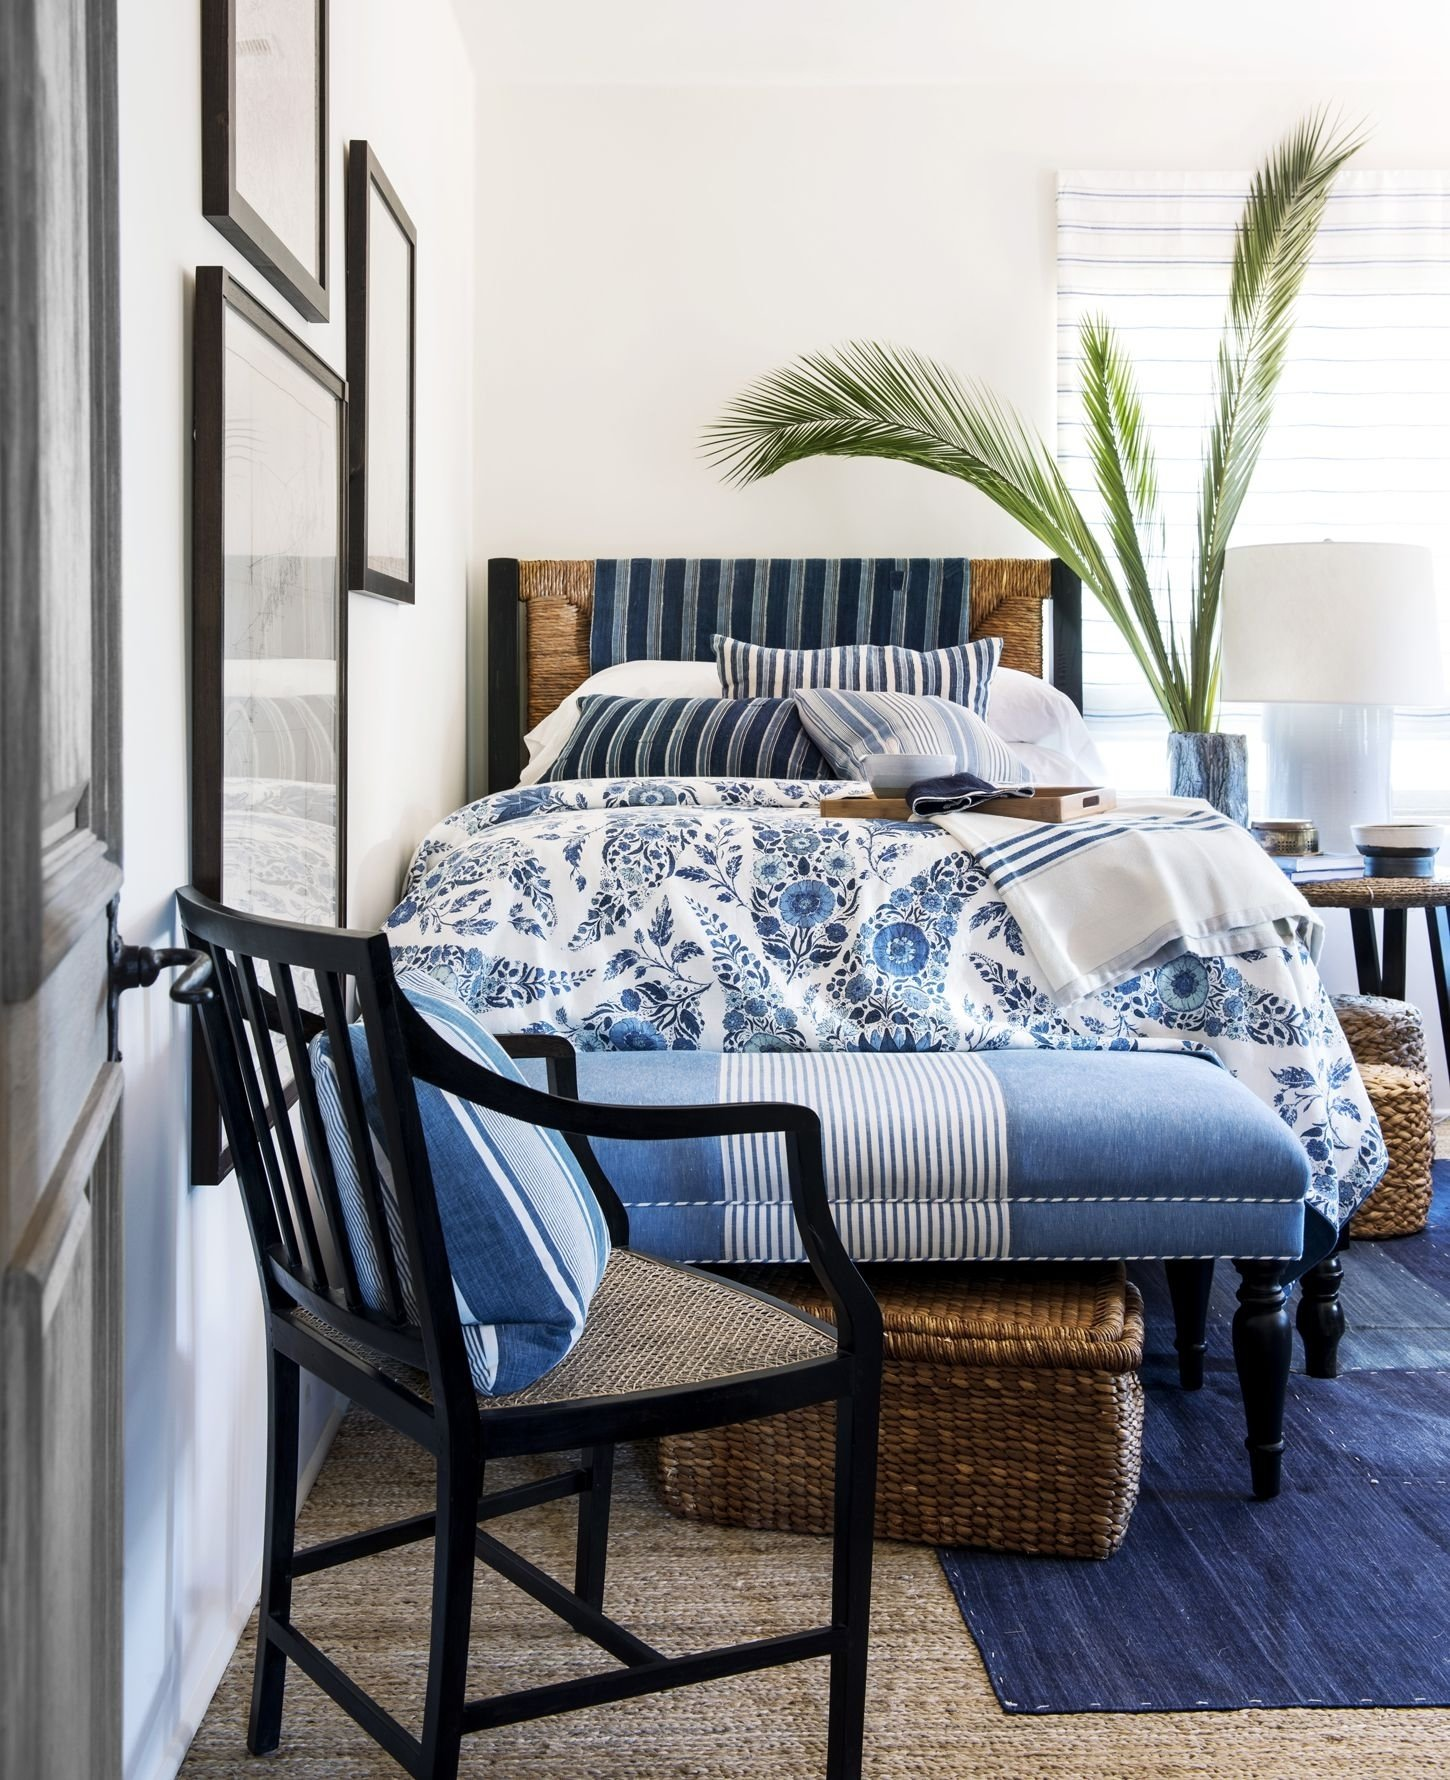 10 Stylish Blue And White Bedroom Ideas 25 best blue rooms decorating ideas for blue walls and home decor 2020